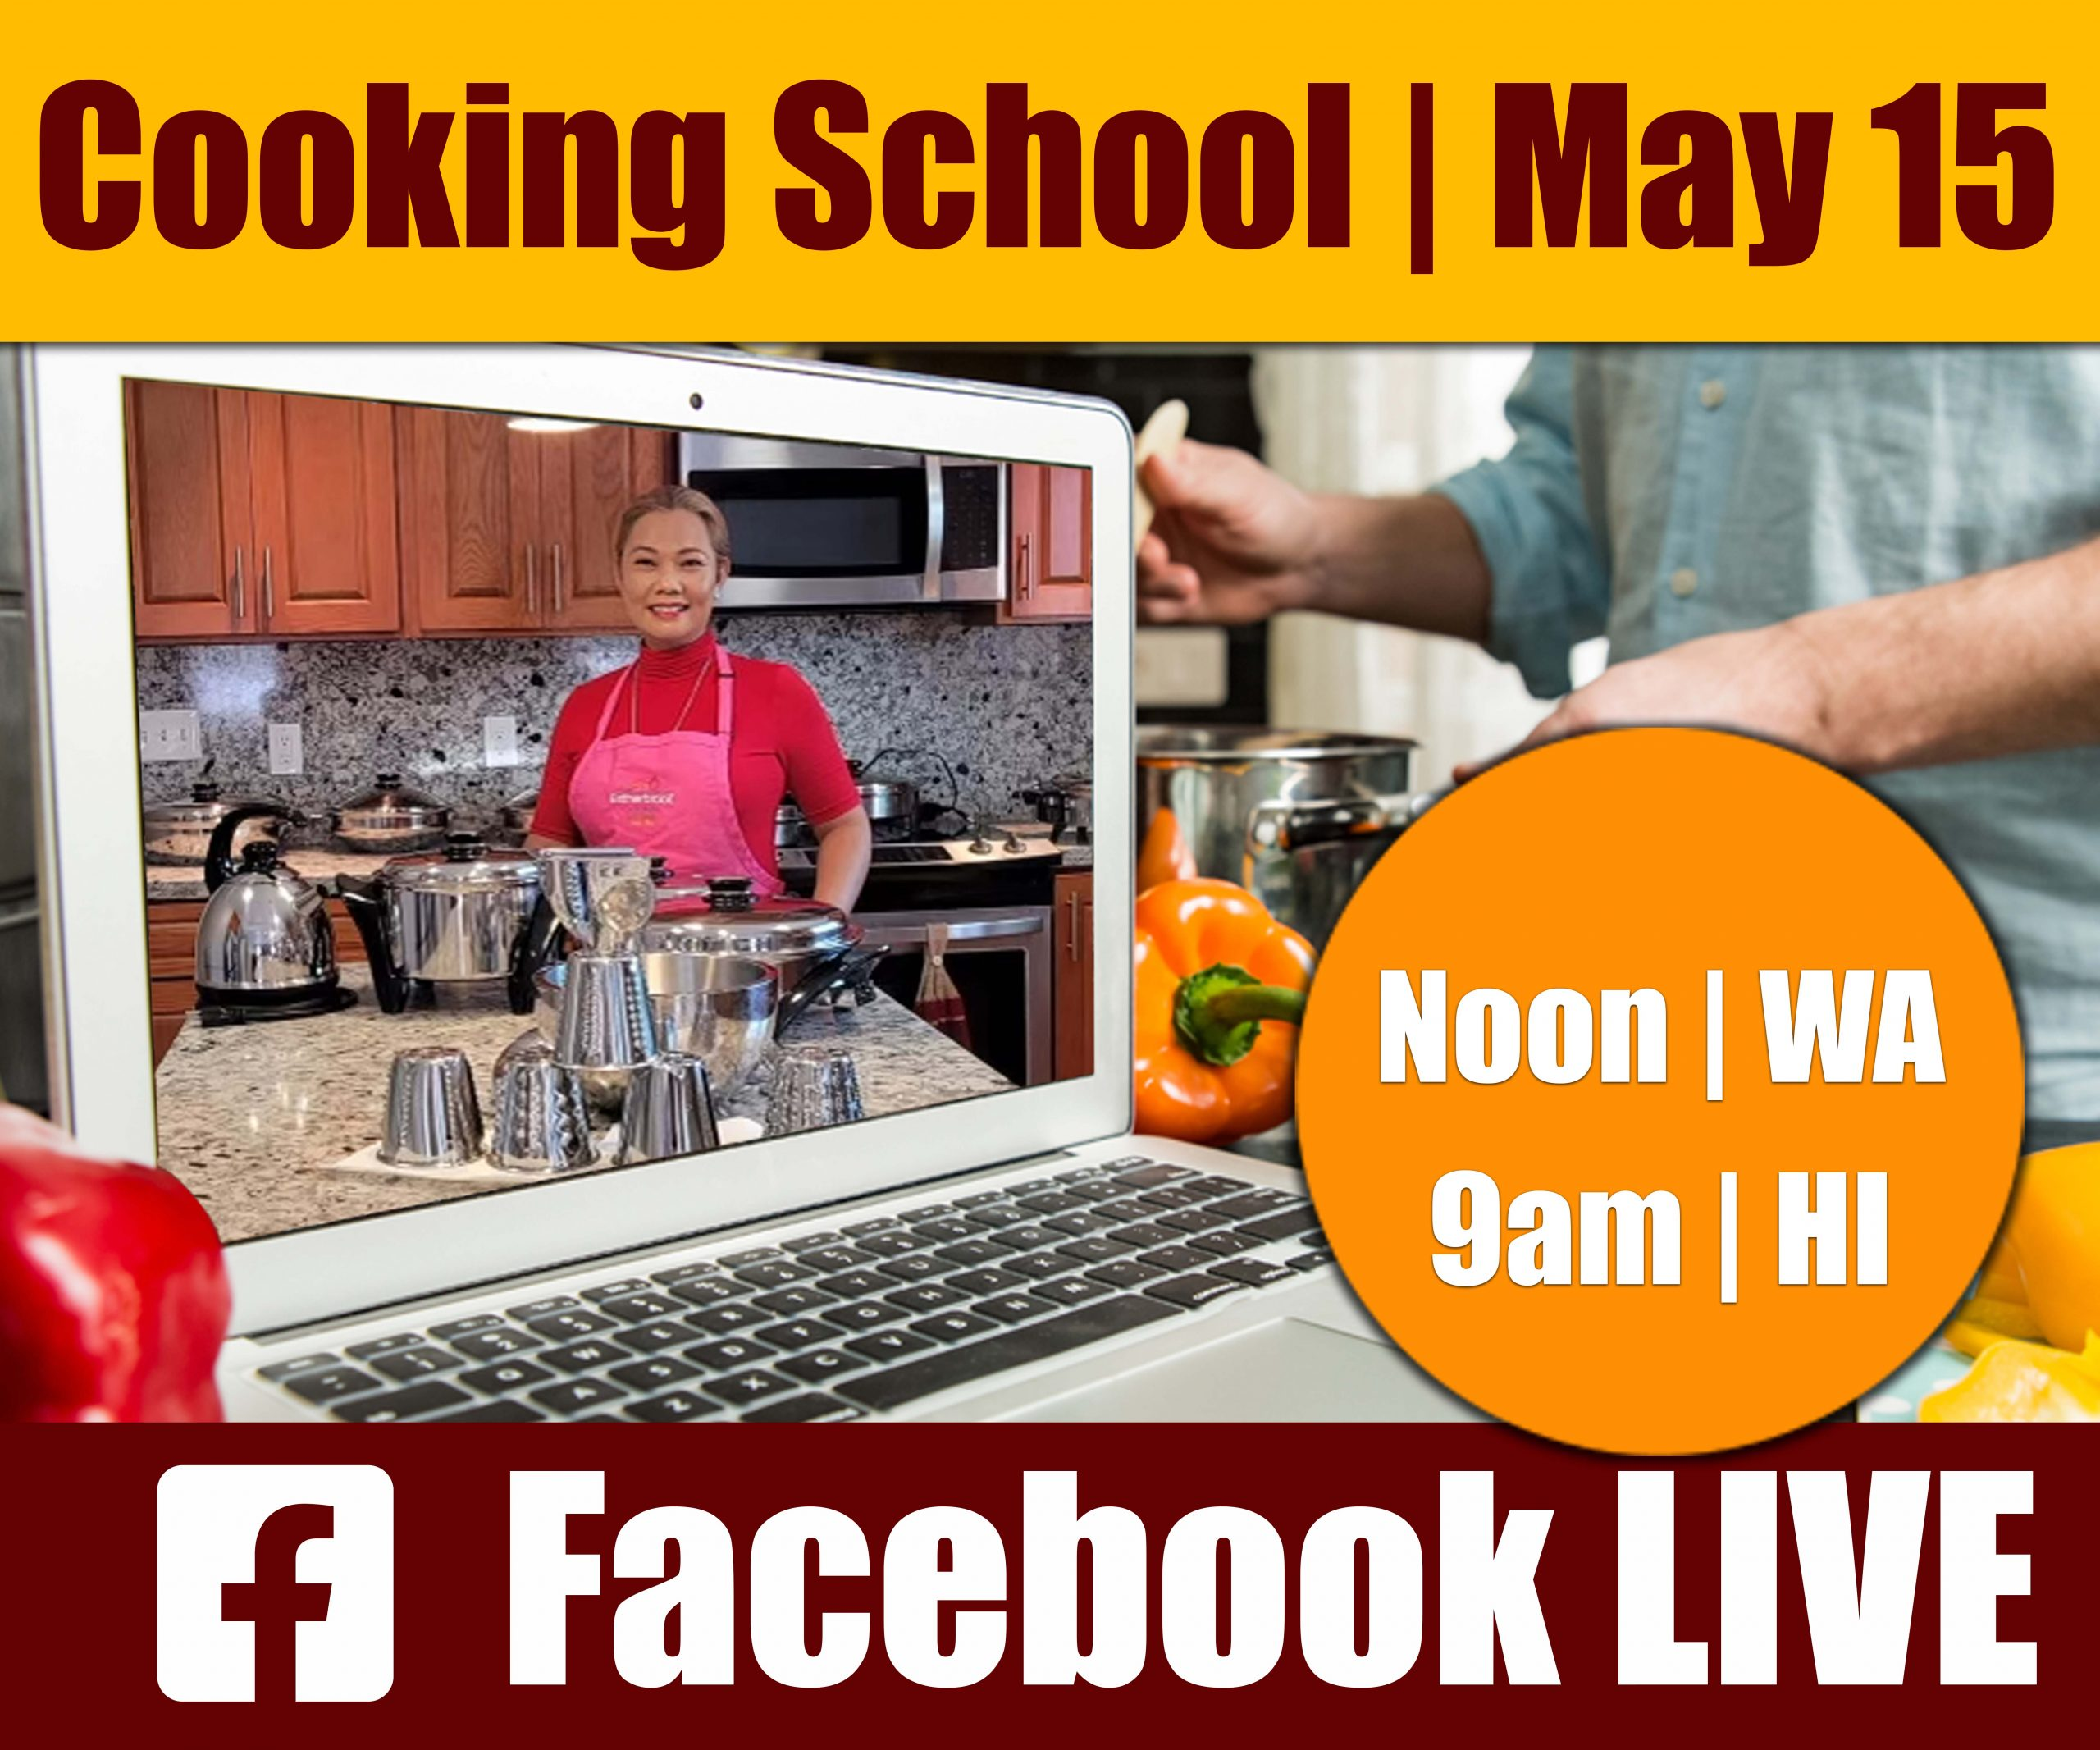 May 15 Cooking School